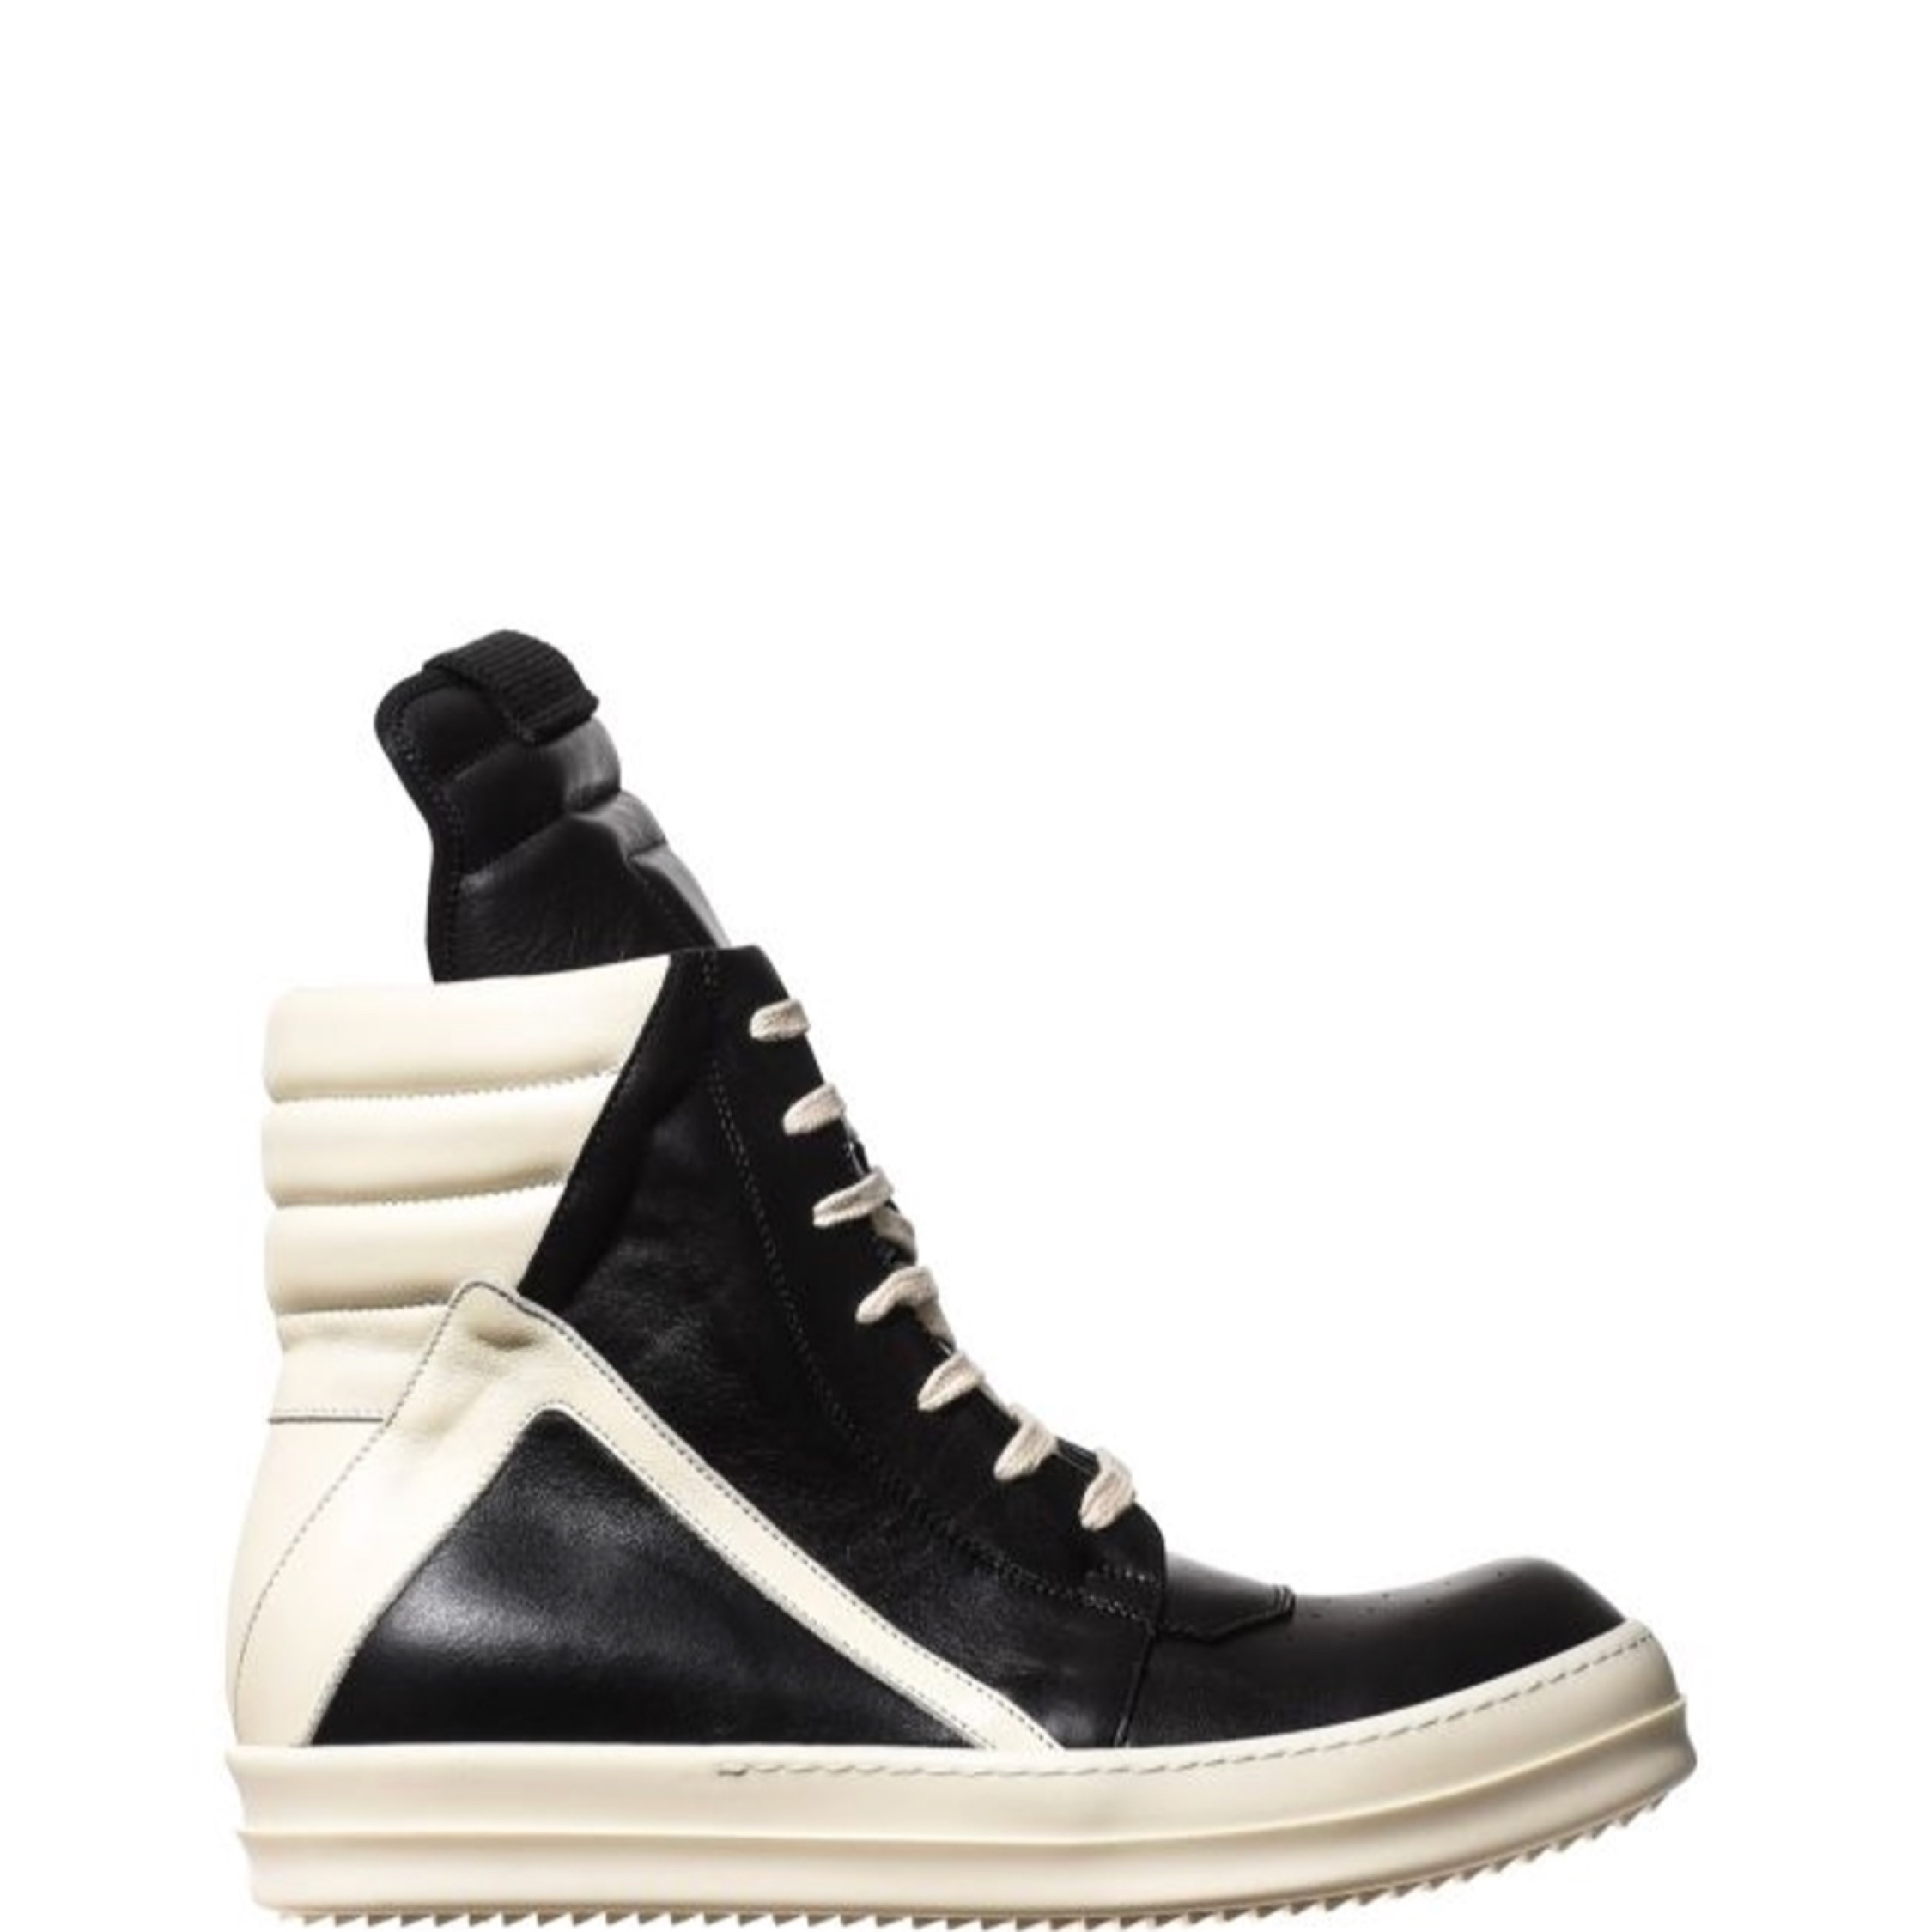 new product dffc8 90db3 Rick Owens Geobasket Sneakers Size 8 New